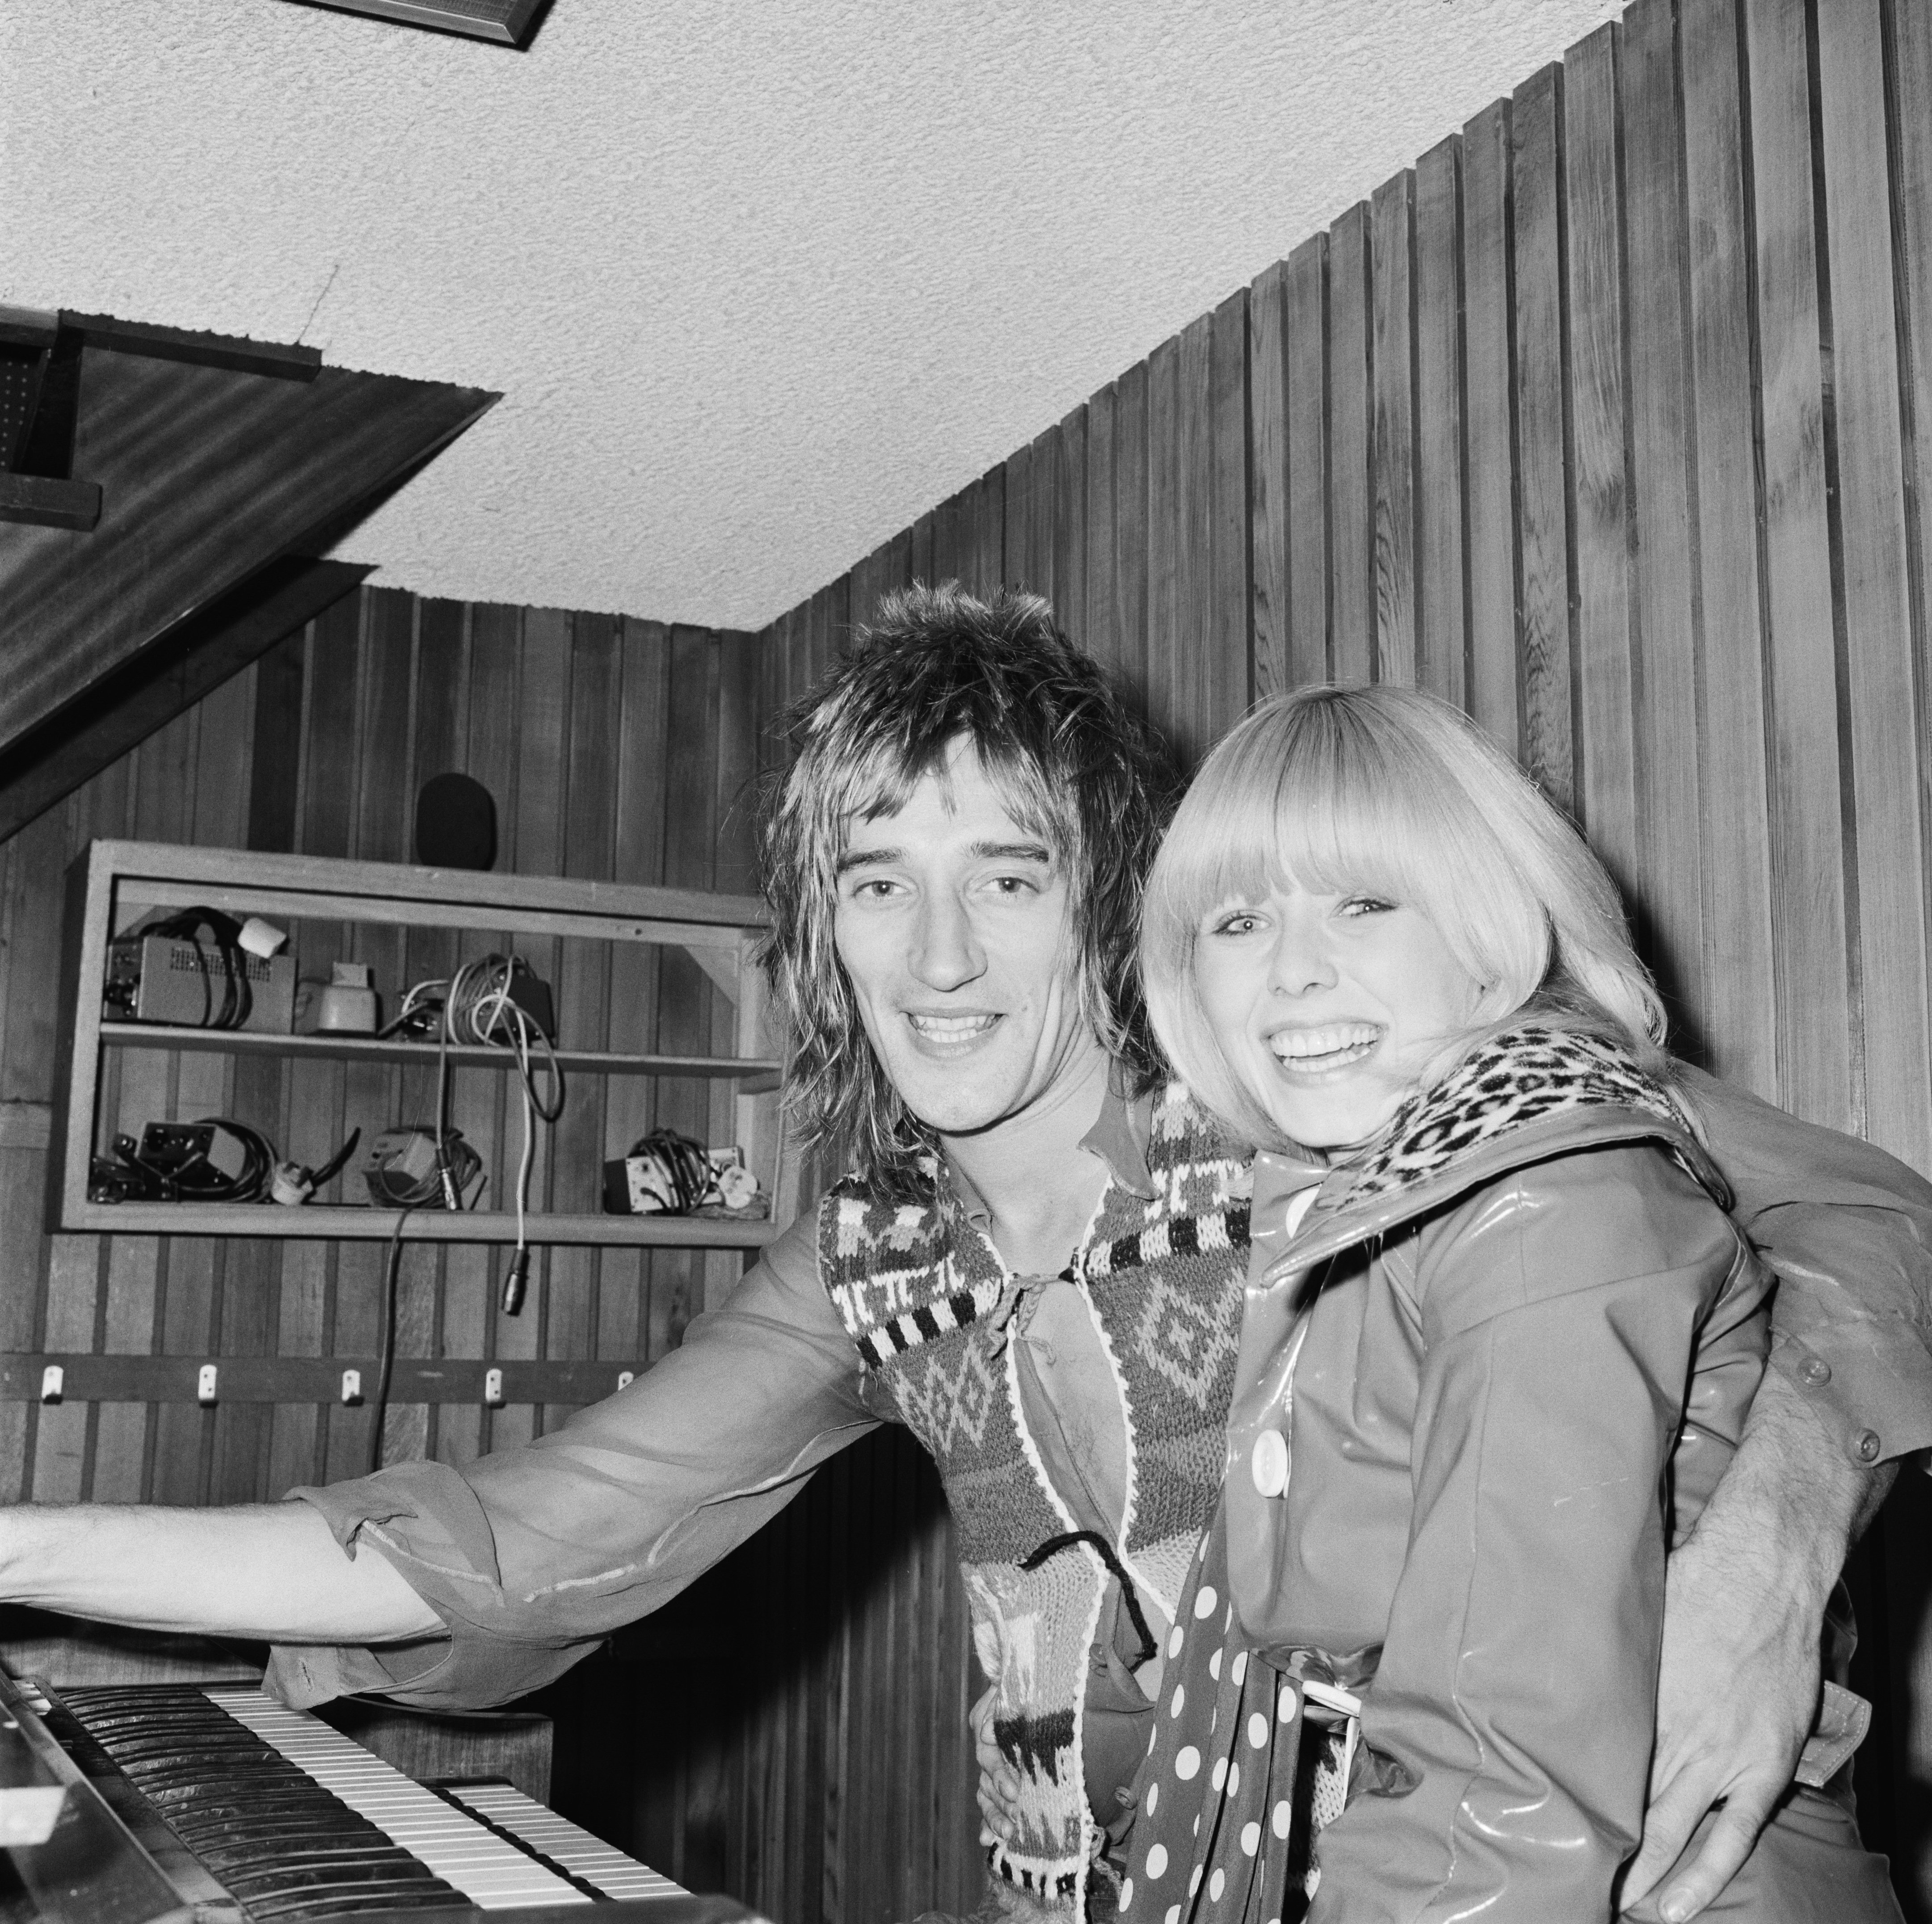 British rock singer and songwriter Rod Stewart with his girlfriend Kathy Simmonds, UK, 8th November 1973. (Photo by Pierre Manevy/Daily Express/Hulton Archive/Getty Images)